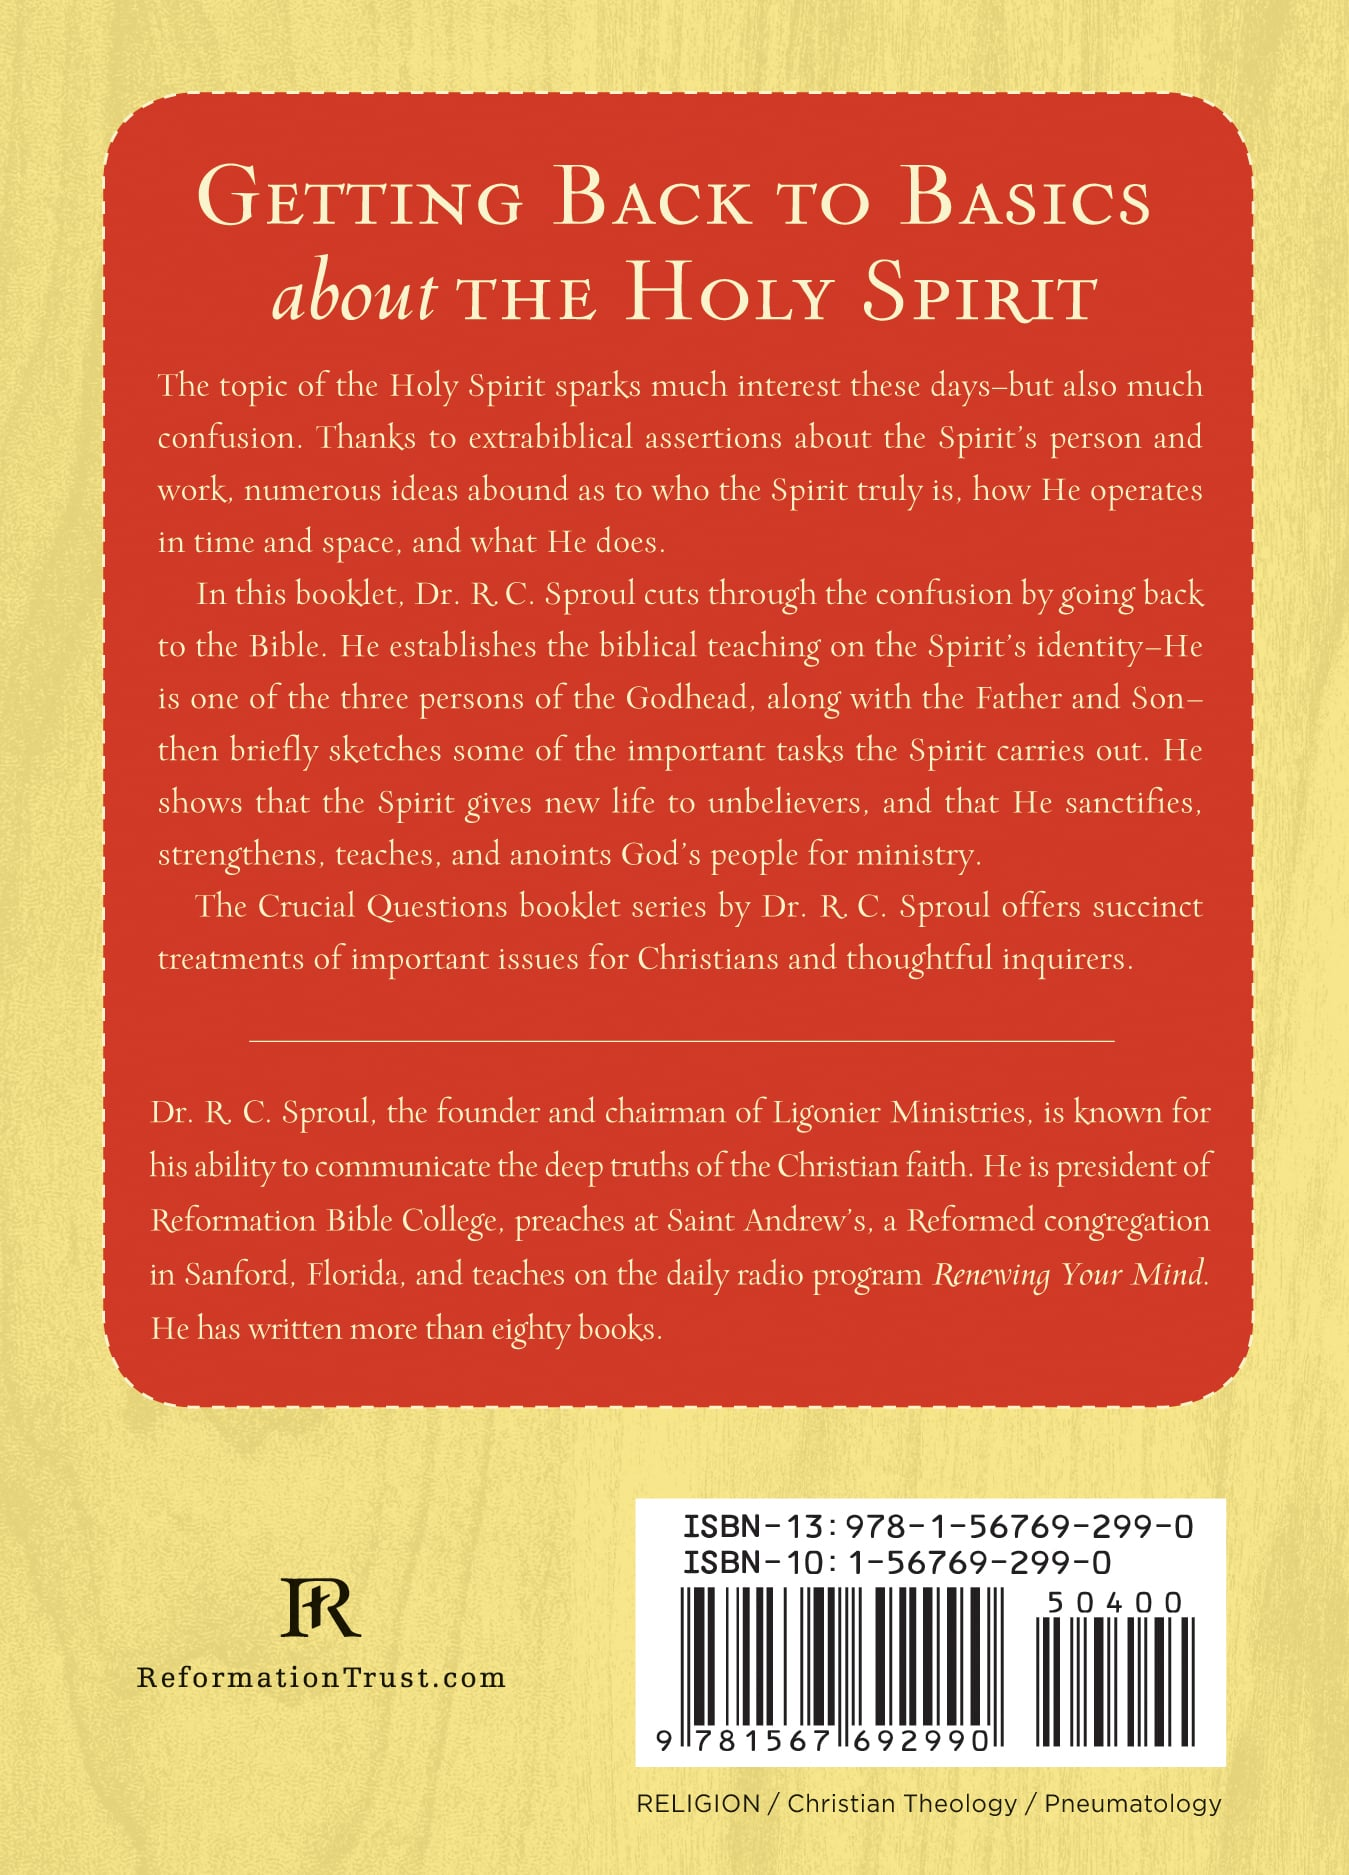 Image: Back Cover (high Res)